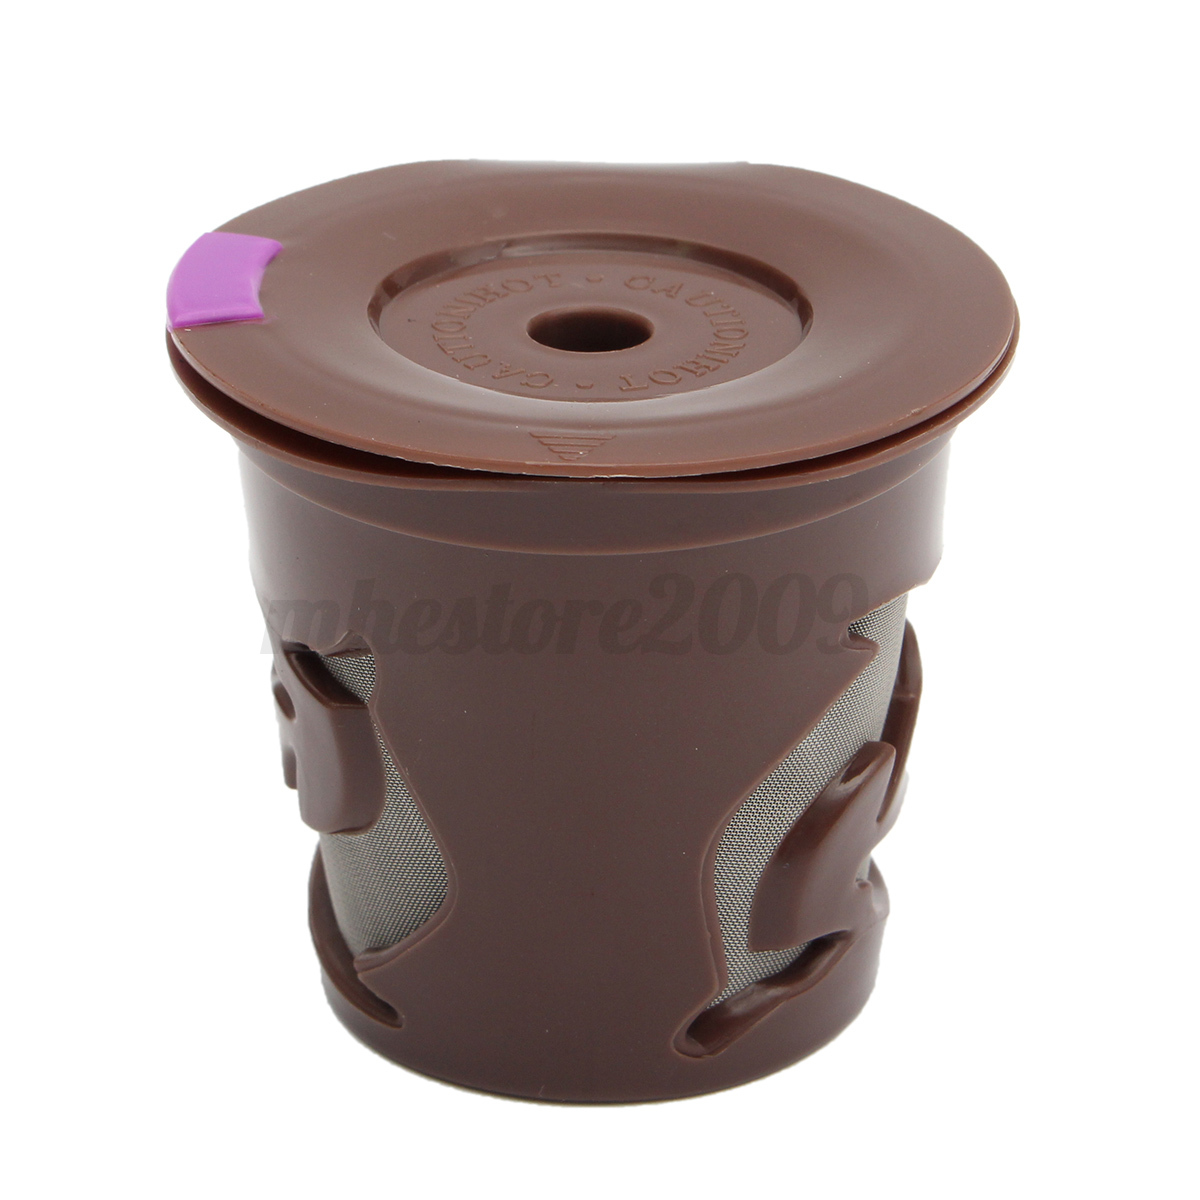 Refillable Coffee Maker Capsule Reusable K-cup Filter For ...